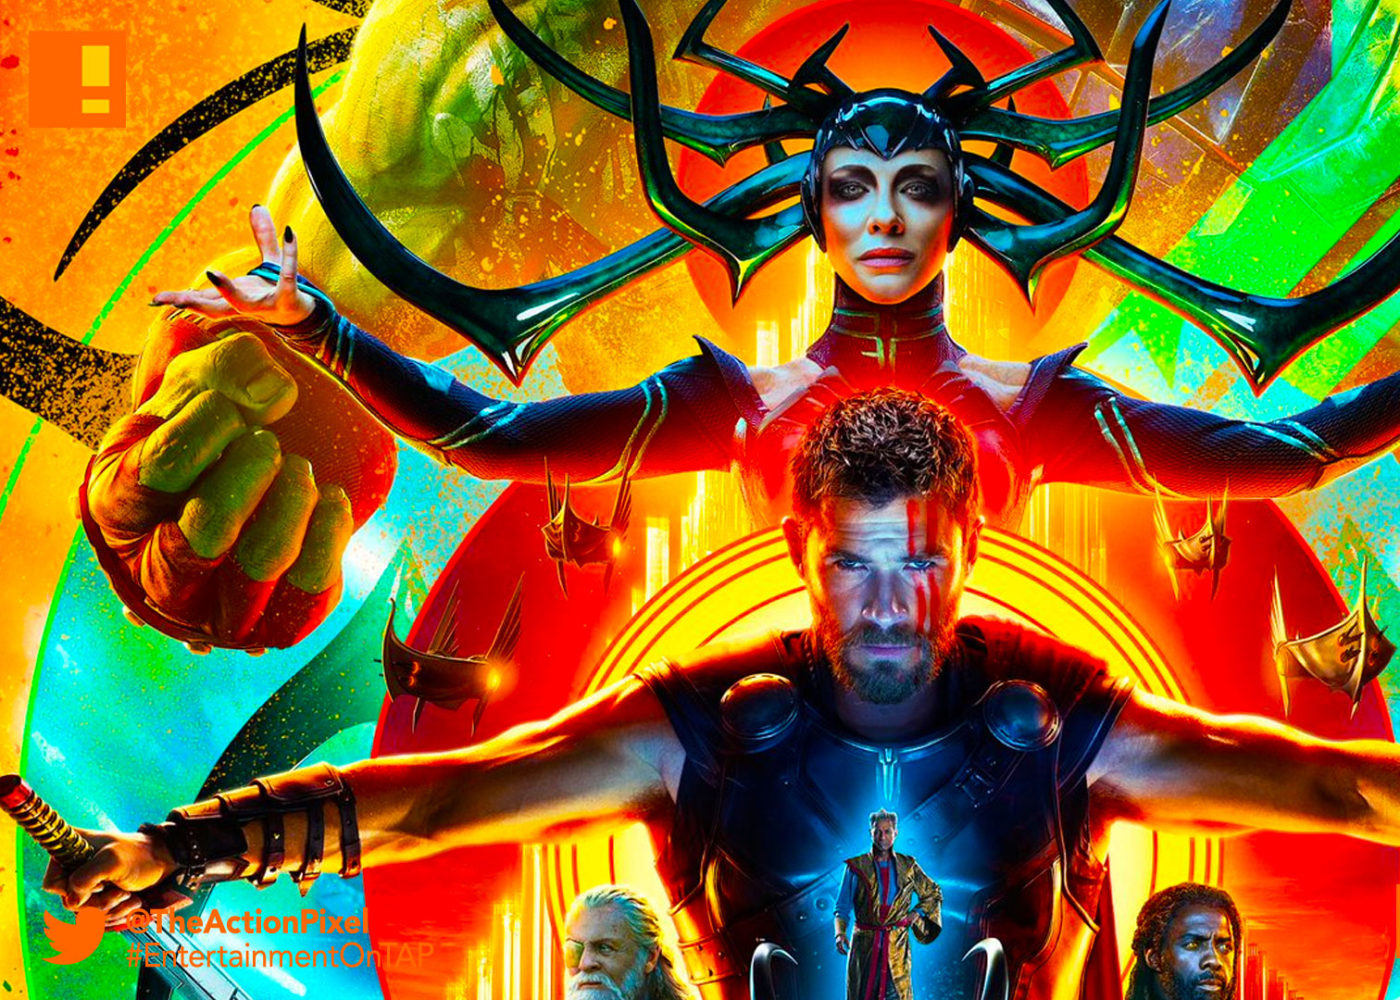 loki, thor ragnarok, hulk, ragnarok, thor, thor: ragnarok, marvel, marvel comics, tom hiddleston,chris hemsworth, david banner, entertainment on tap, the action pixel, marvel studios, teaser, trailer, teaser trailer,poster, the action pixel